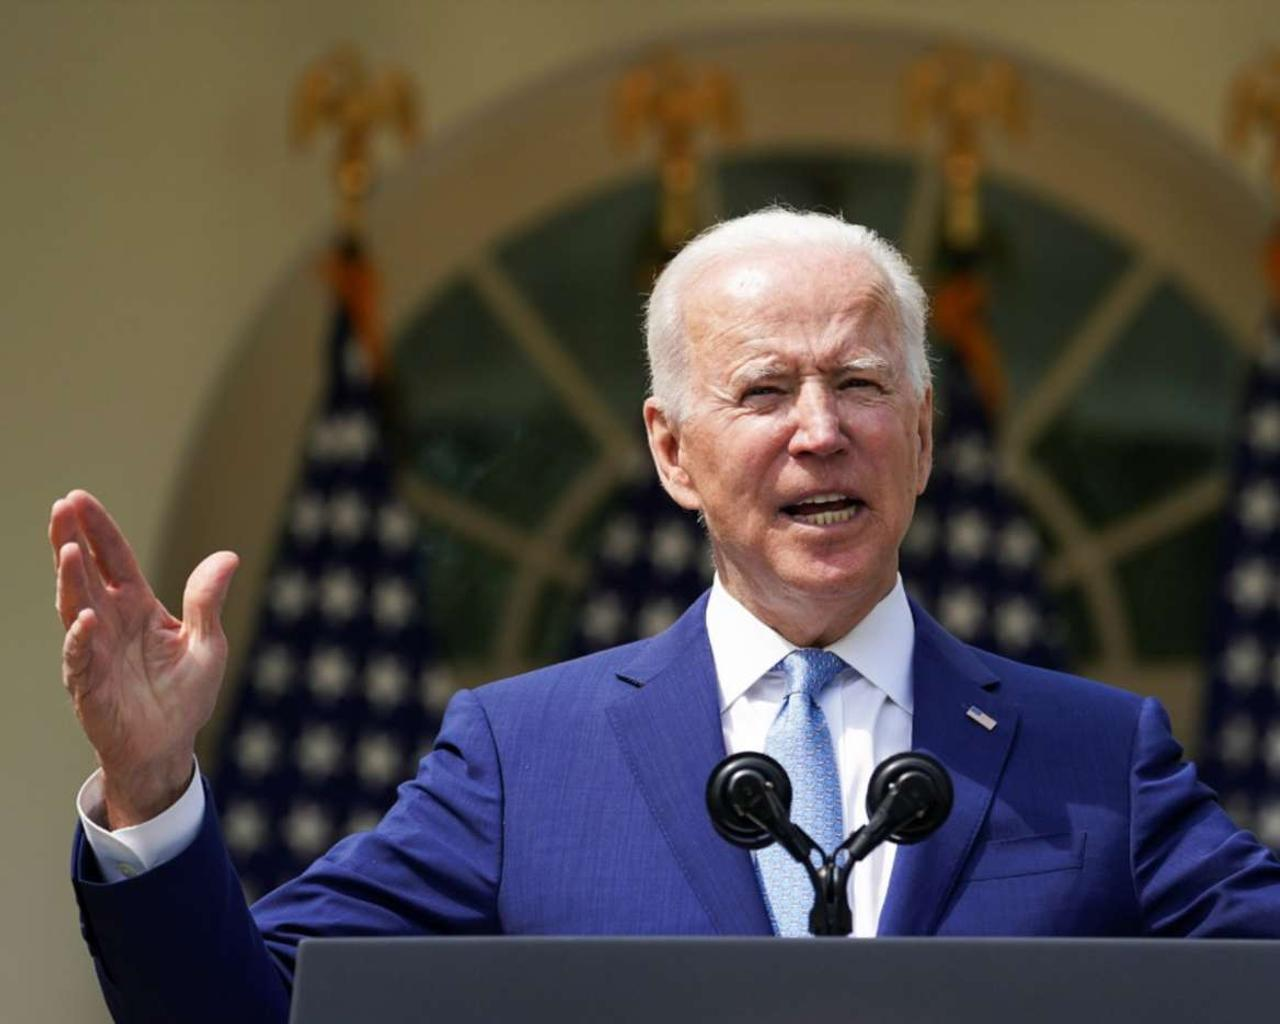 Joe Biden announced that the US would complete the withdrawal of its troops from Afghanistan